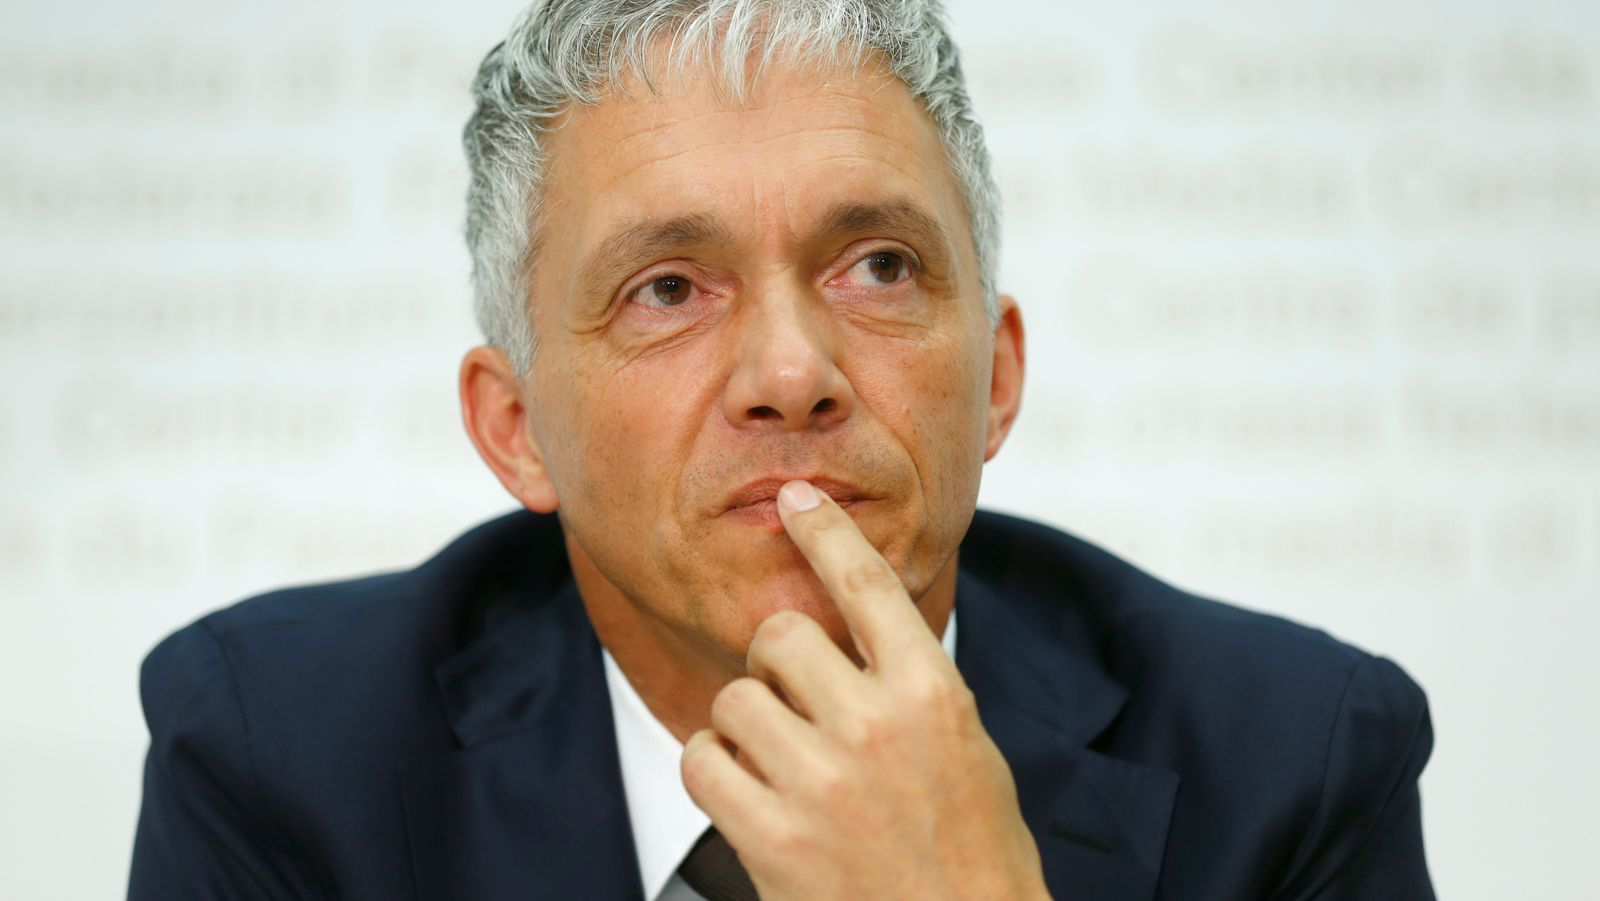 FILE PHOTO: Swiss Attorney General Lauber listens to a question during news conference in Bern